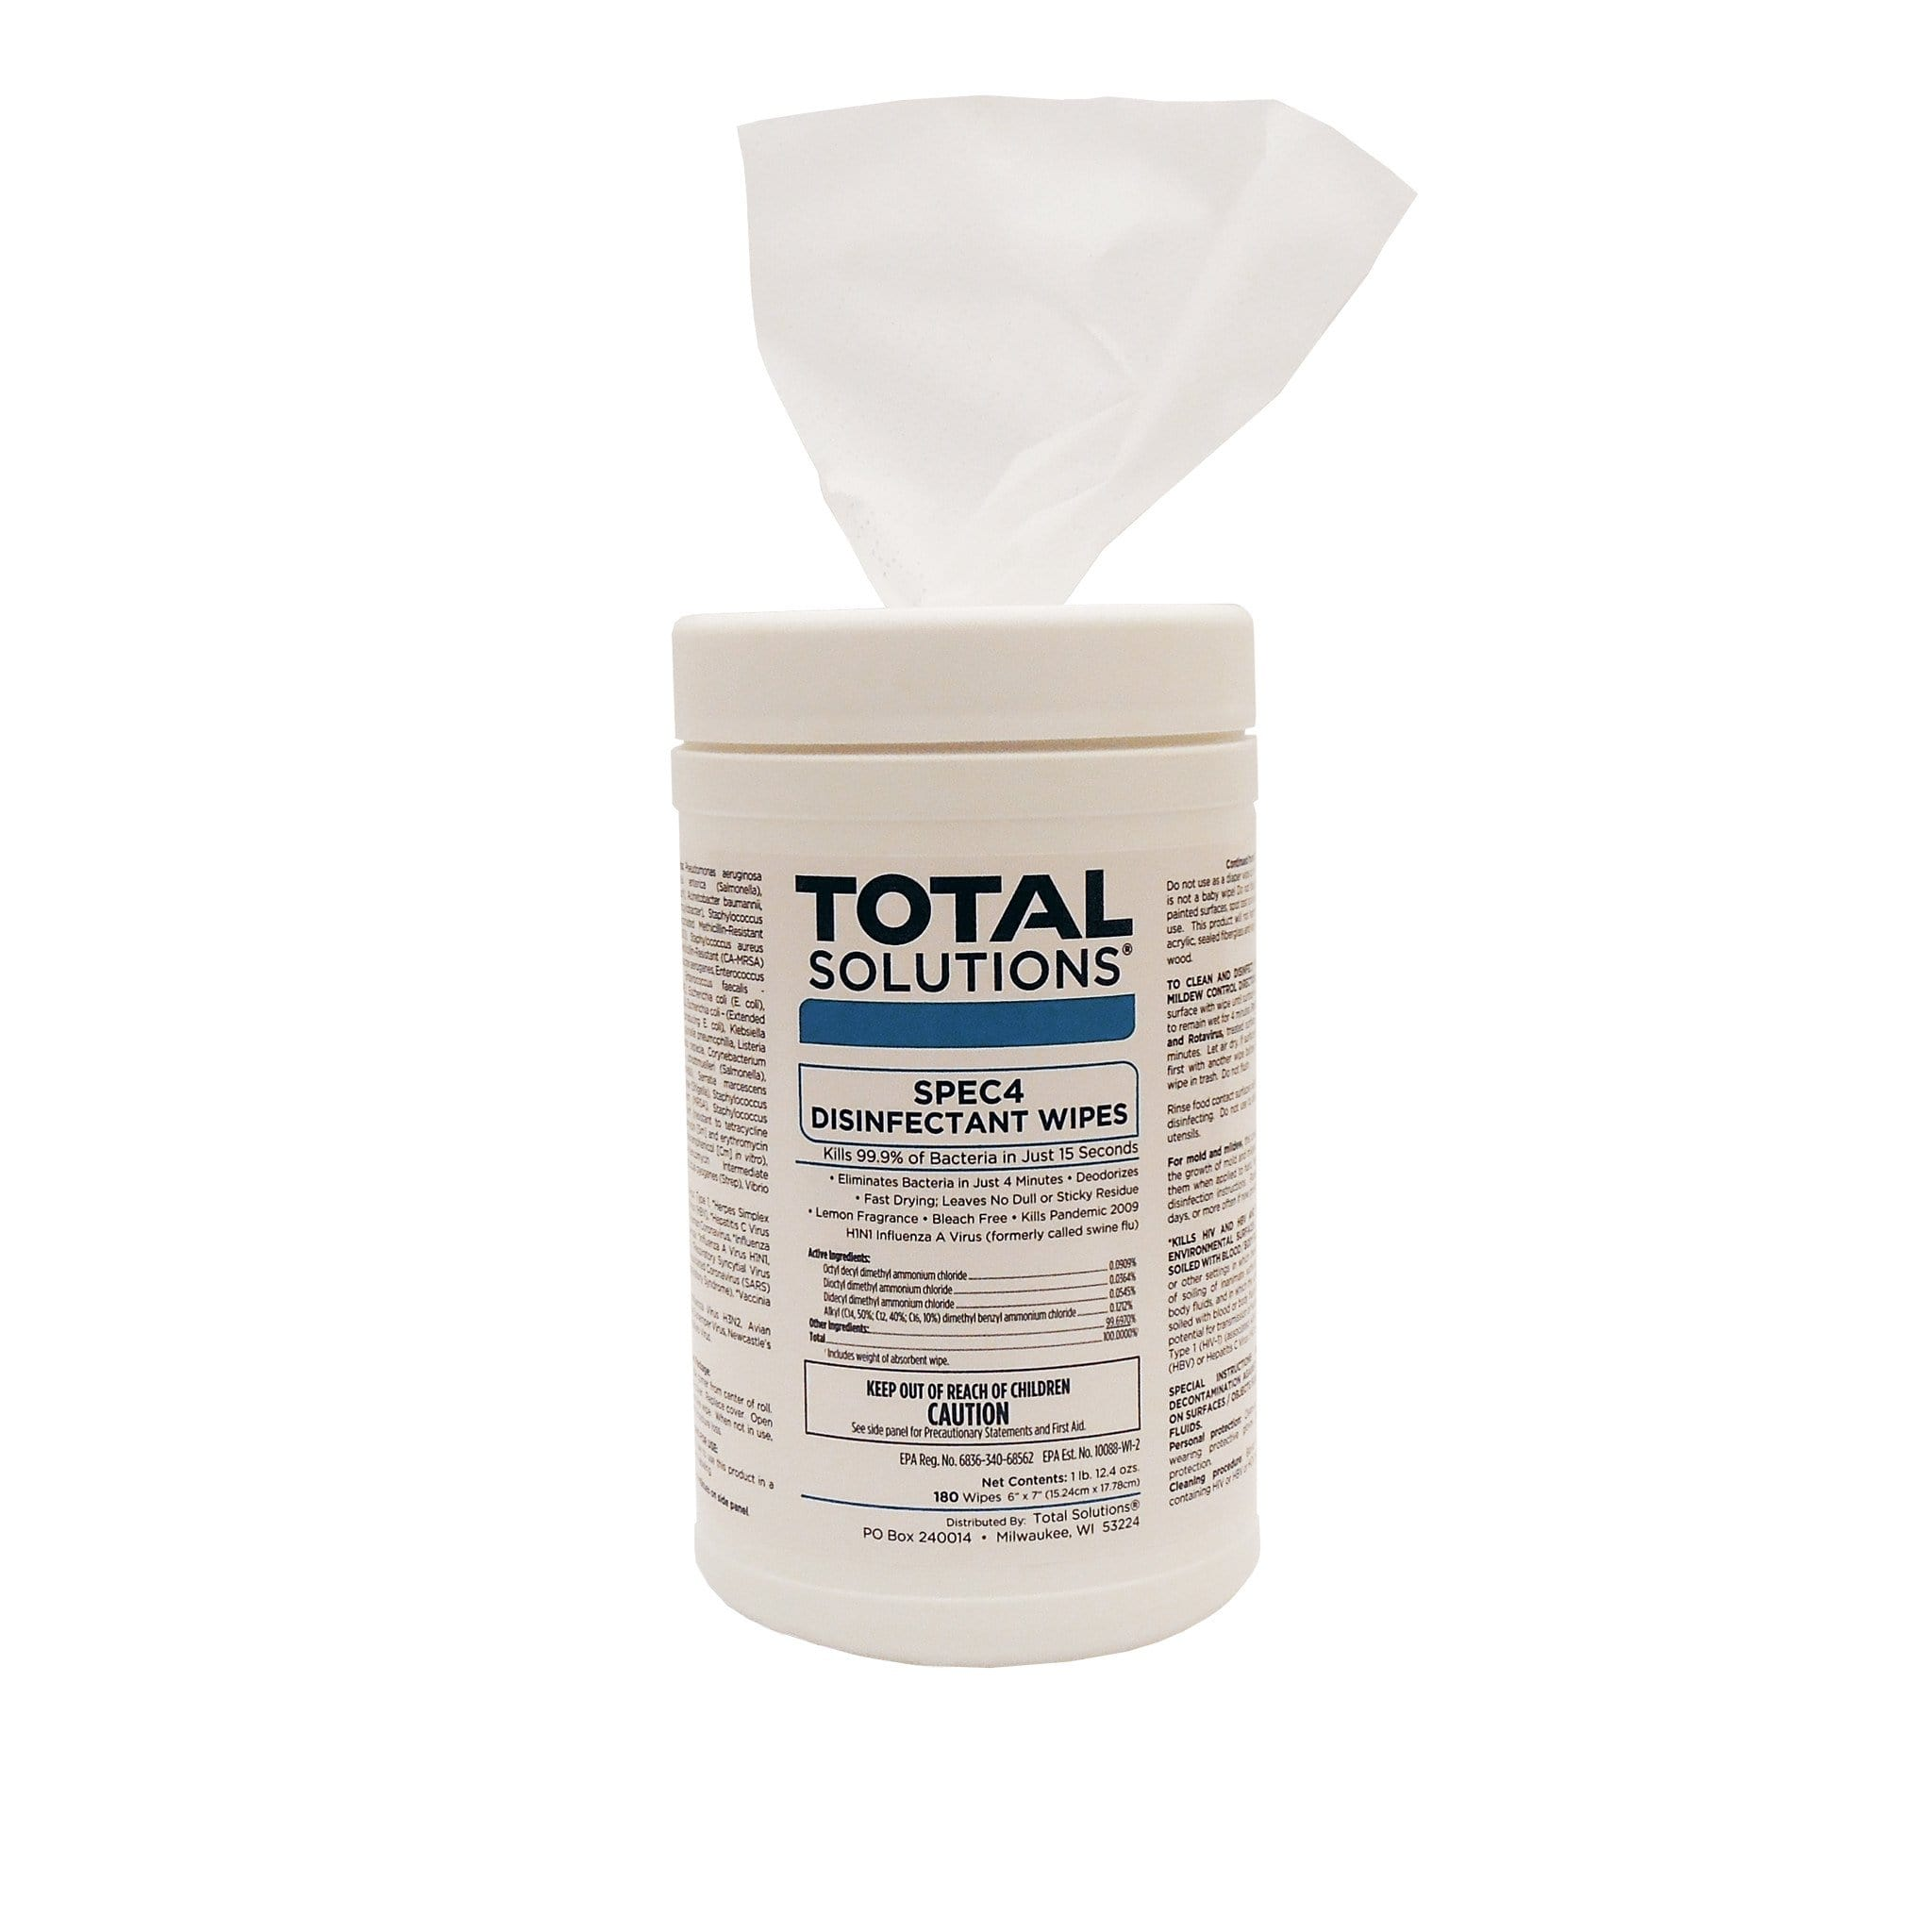 SPEC4 Disinfectant Wipes